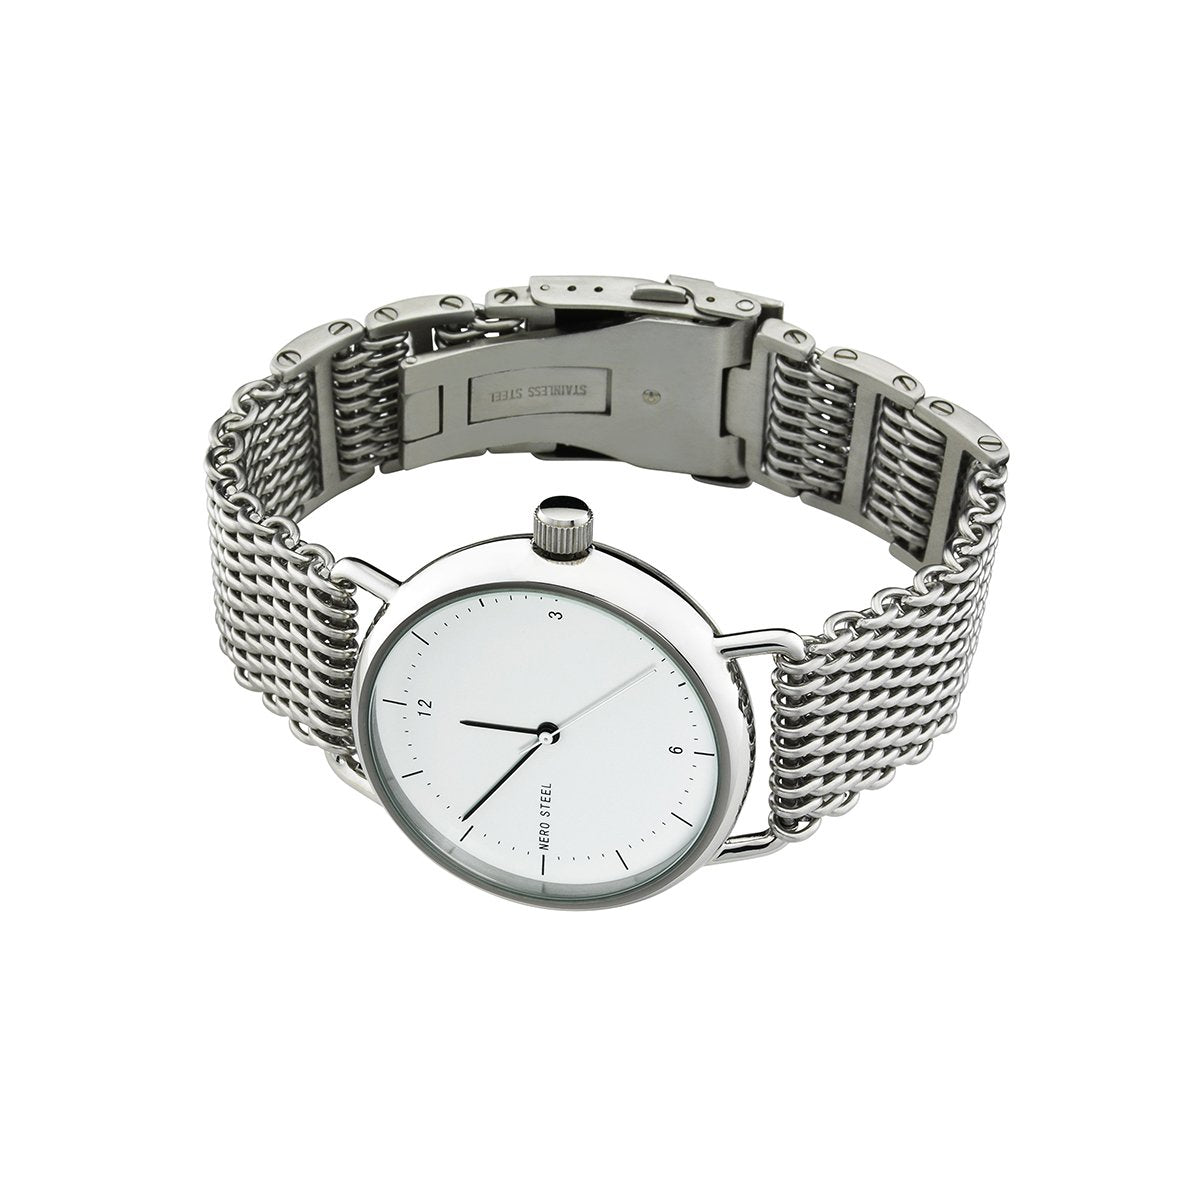 Nero Steel 116 Unisex Stainless Steel Watch